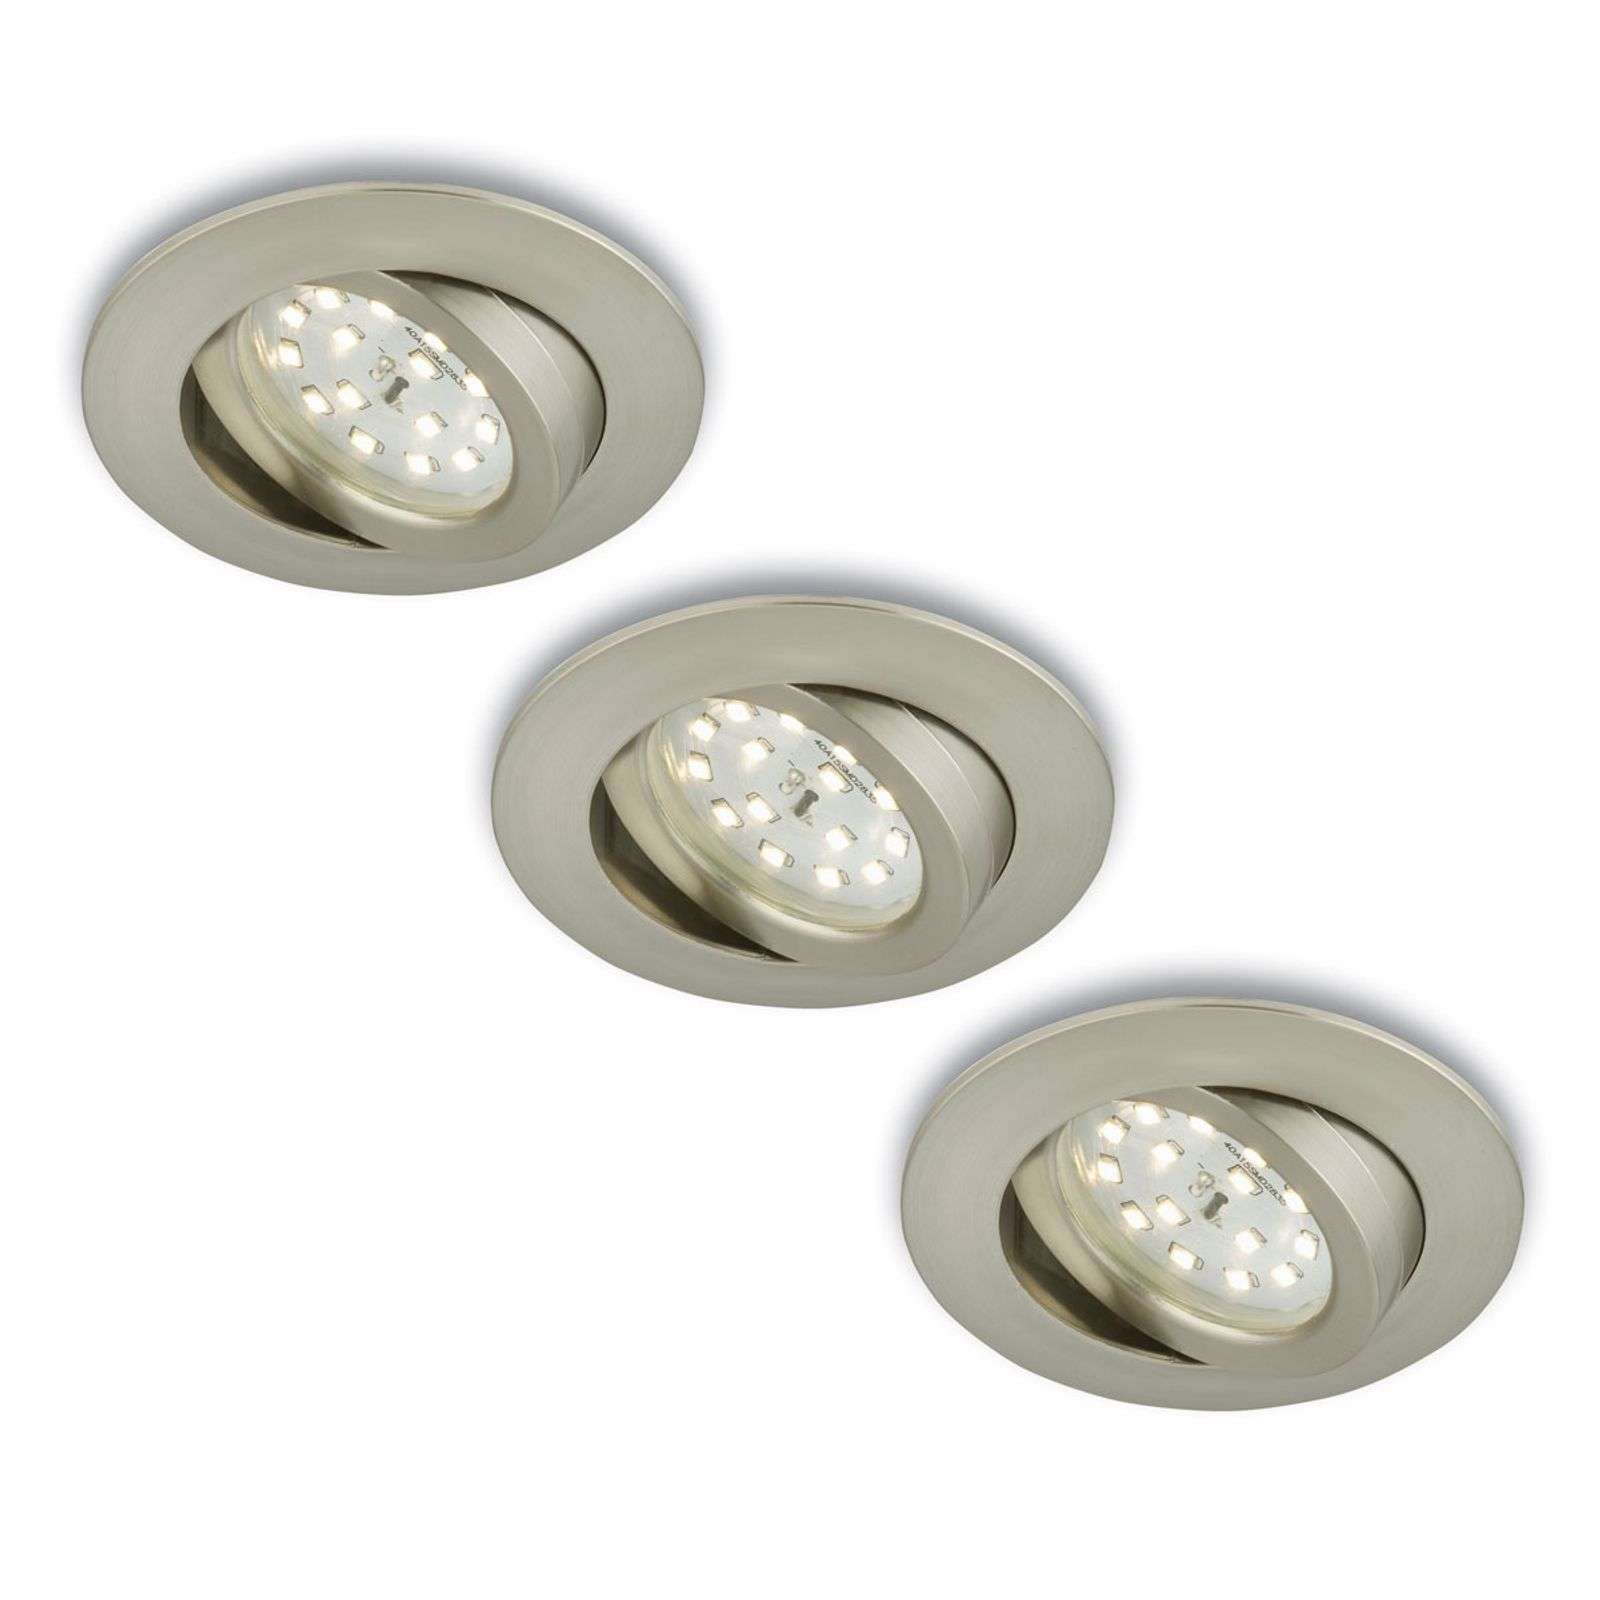 Foco LED empotrable girat., 3 unid., mate-níquel